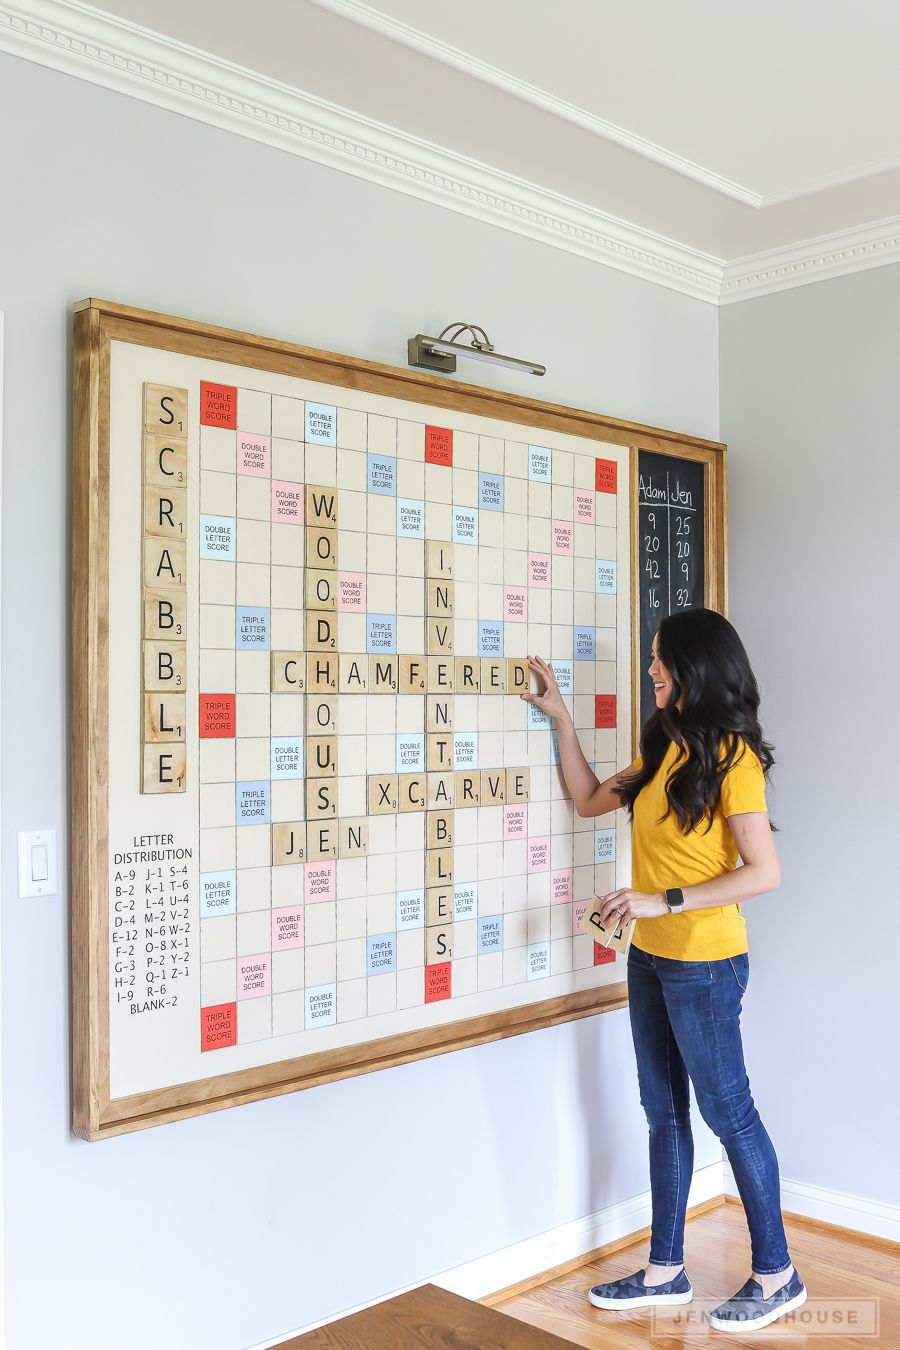 How To Make A DIY Giant Wall Scrabble Game Board -   20 diy projects For Bedroom wall ideas